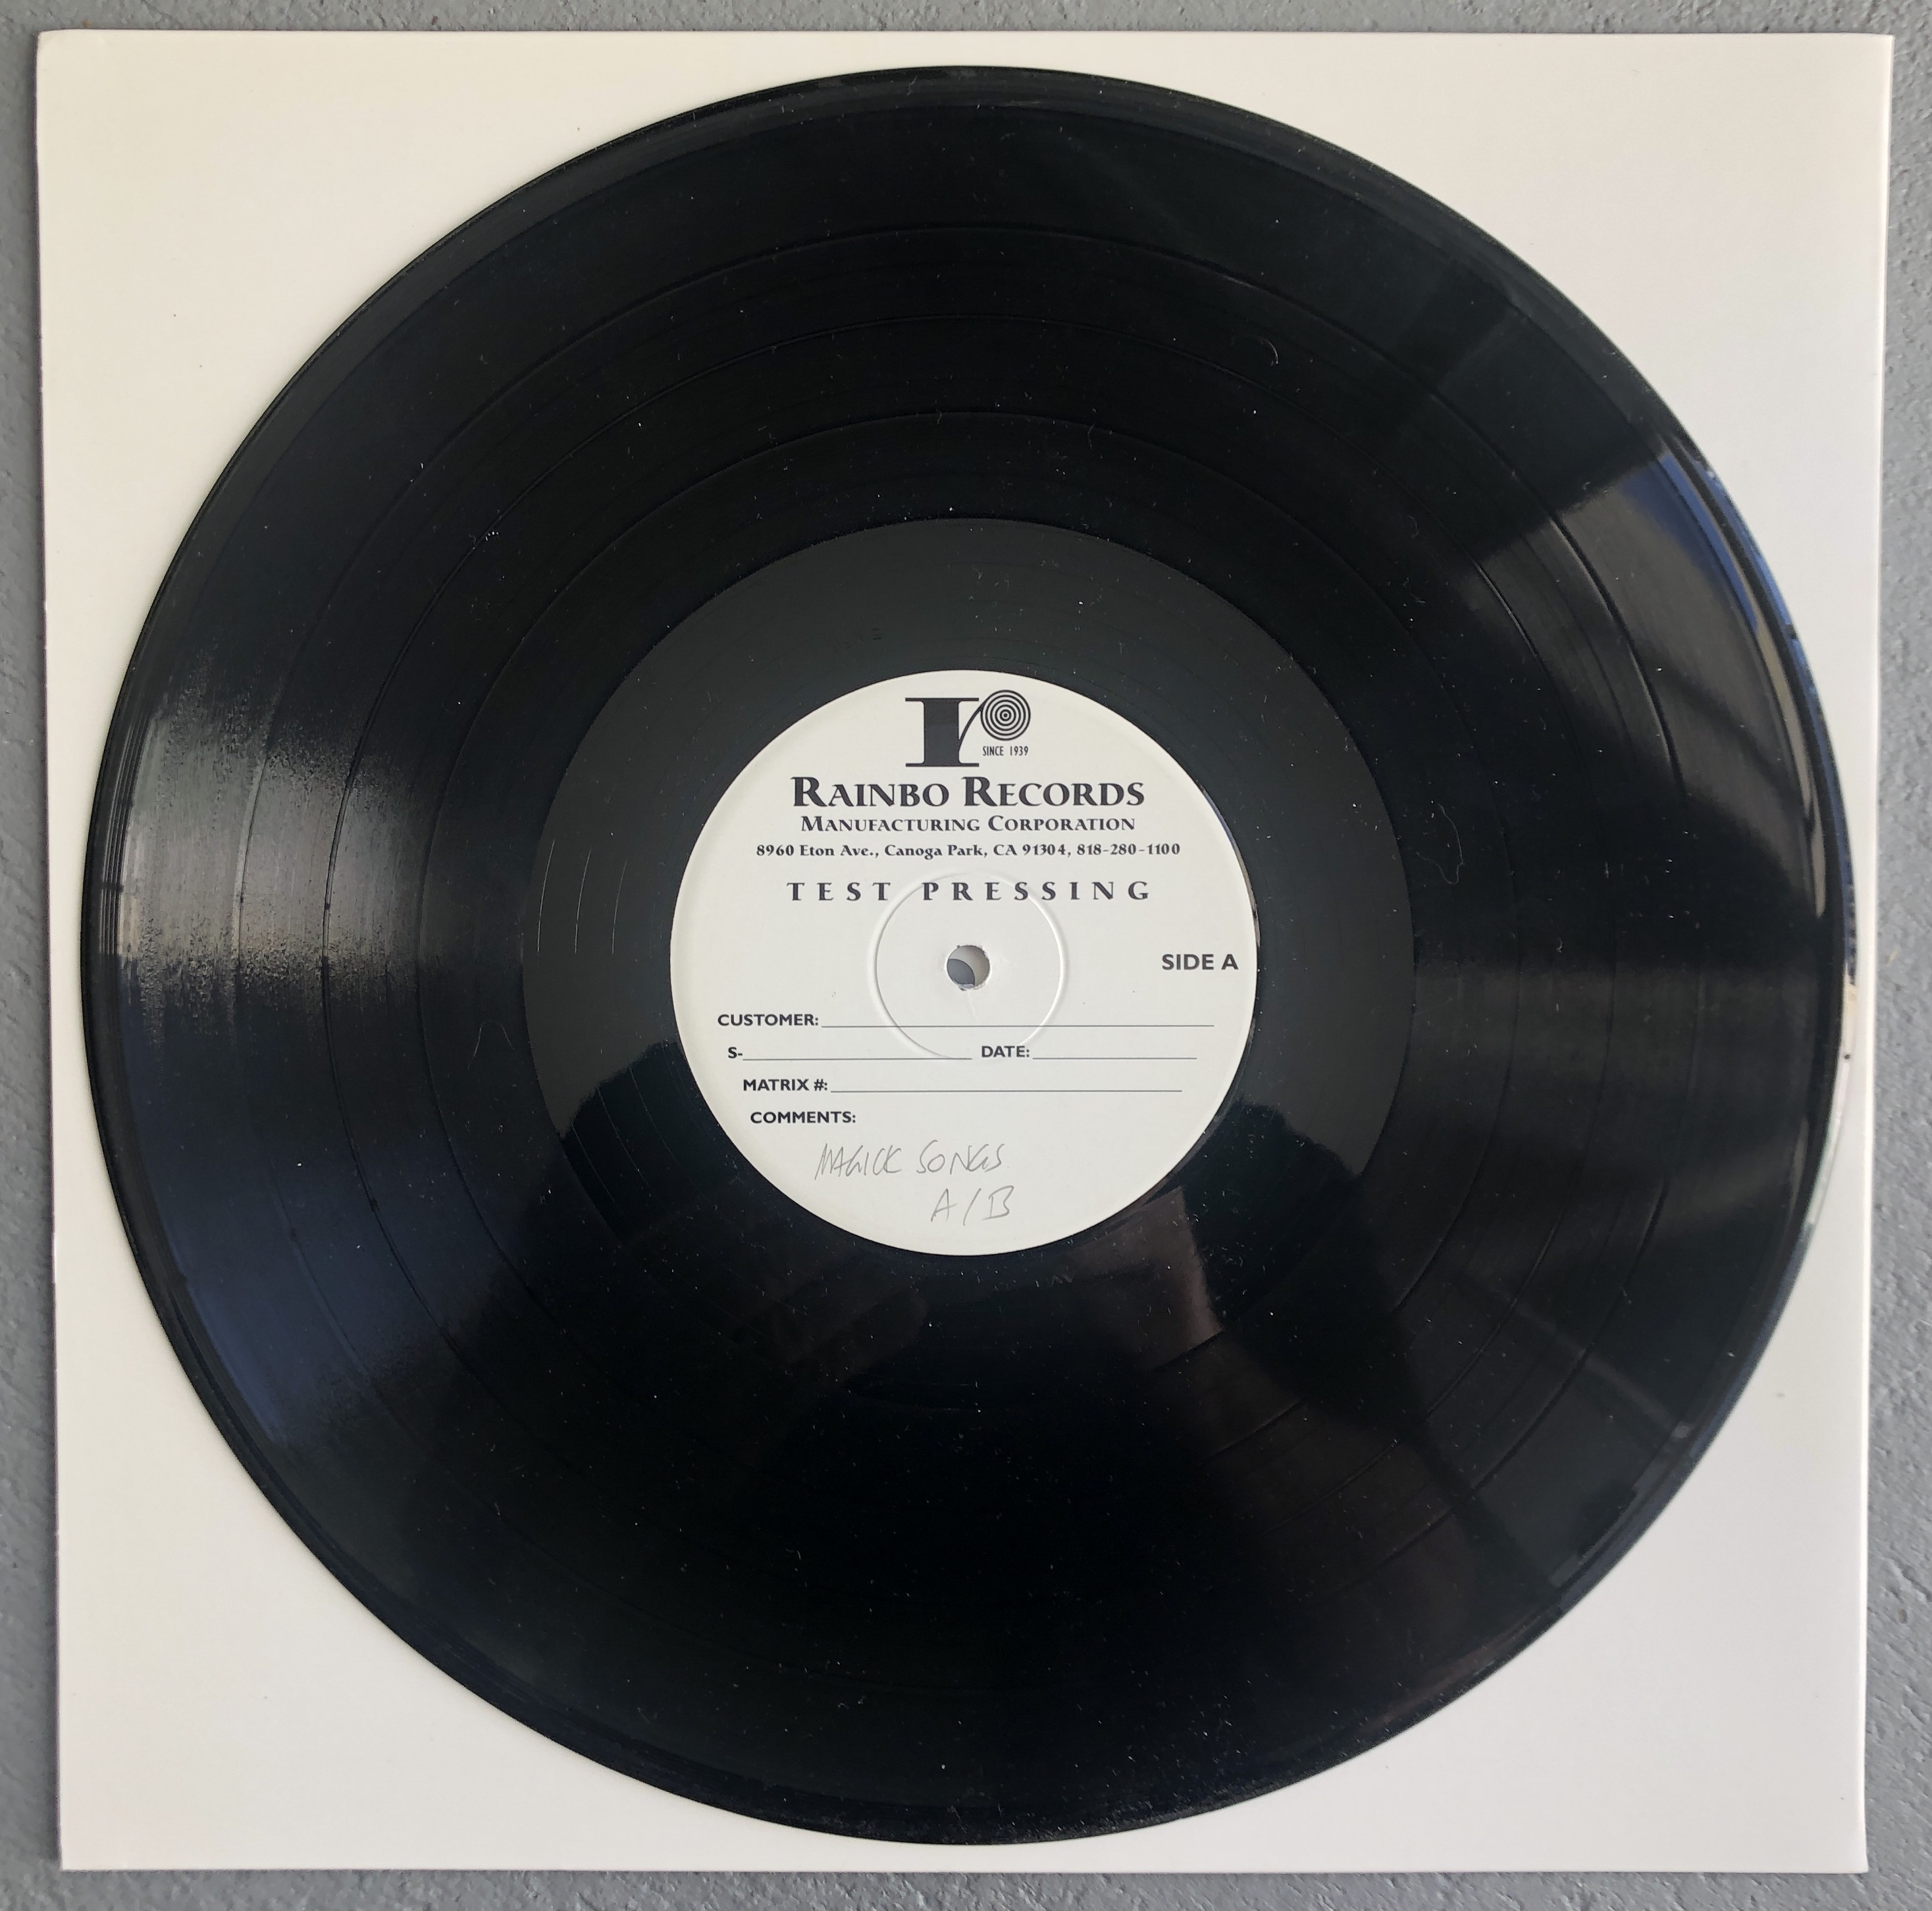 LAST OF THE TEST PRESSINGS Coming in October!